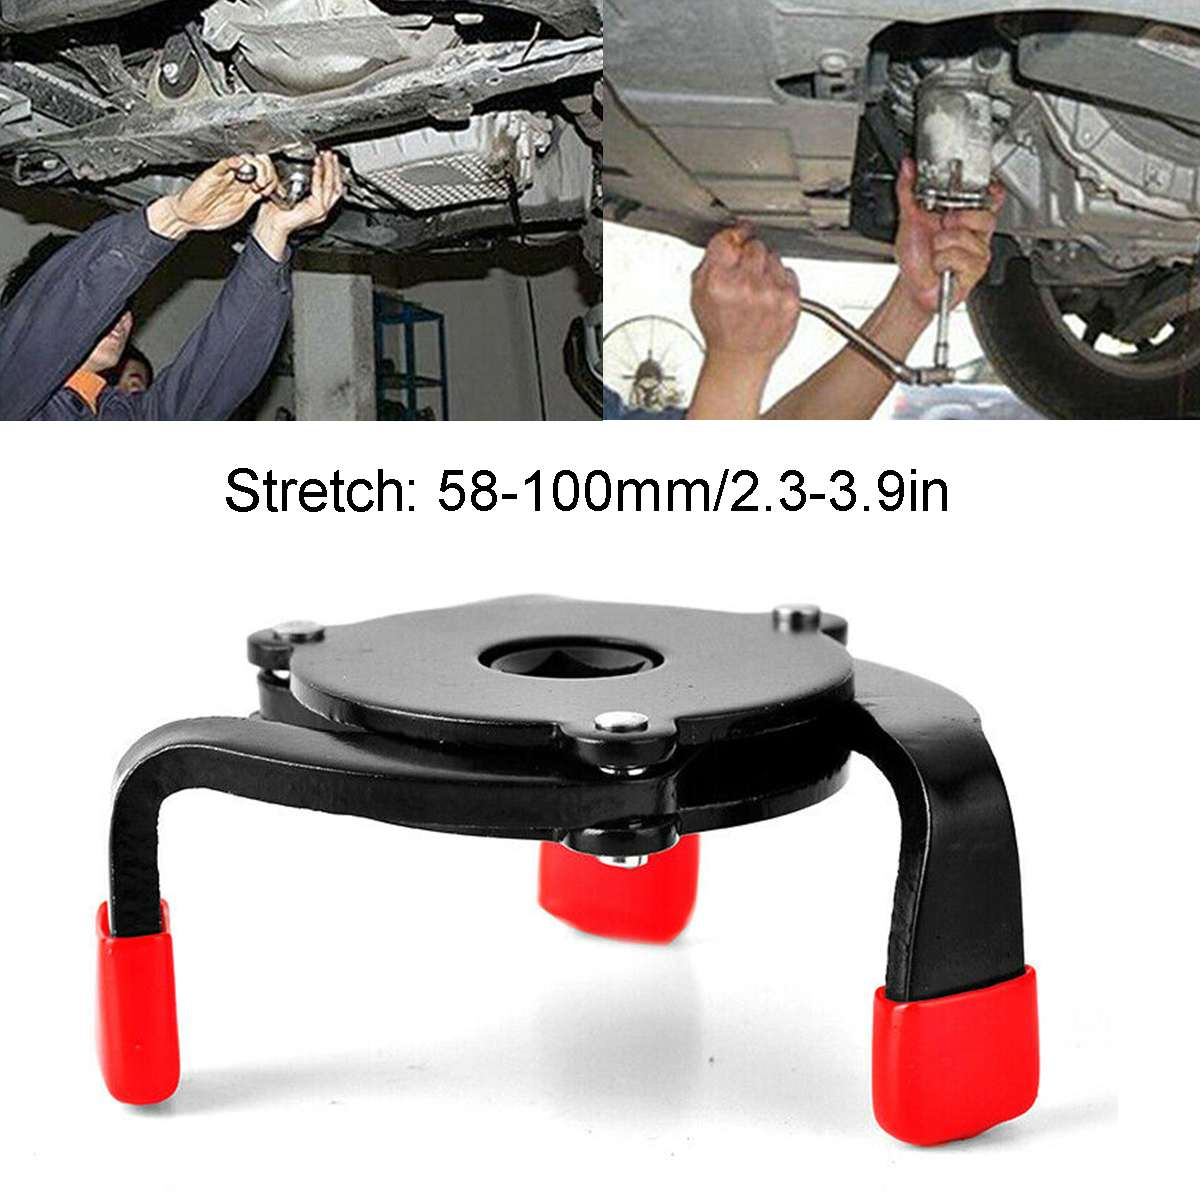 3 Jaw Universal Oil Filter Wrench With Anti-Slip Edging Oil Core Disassembly Ball Head 2